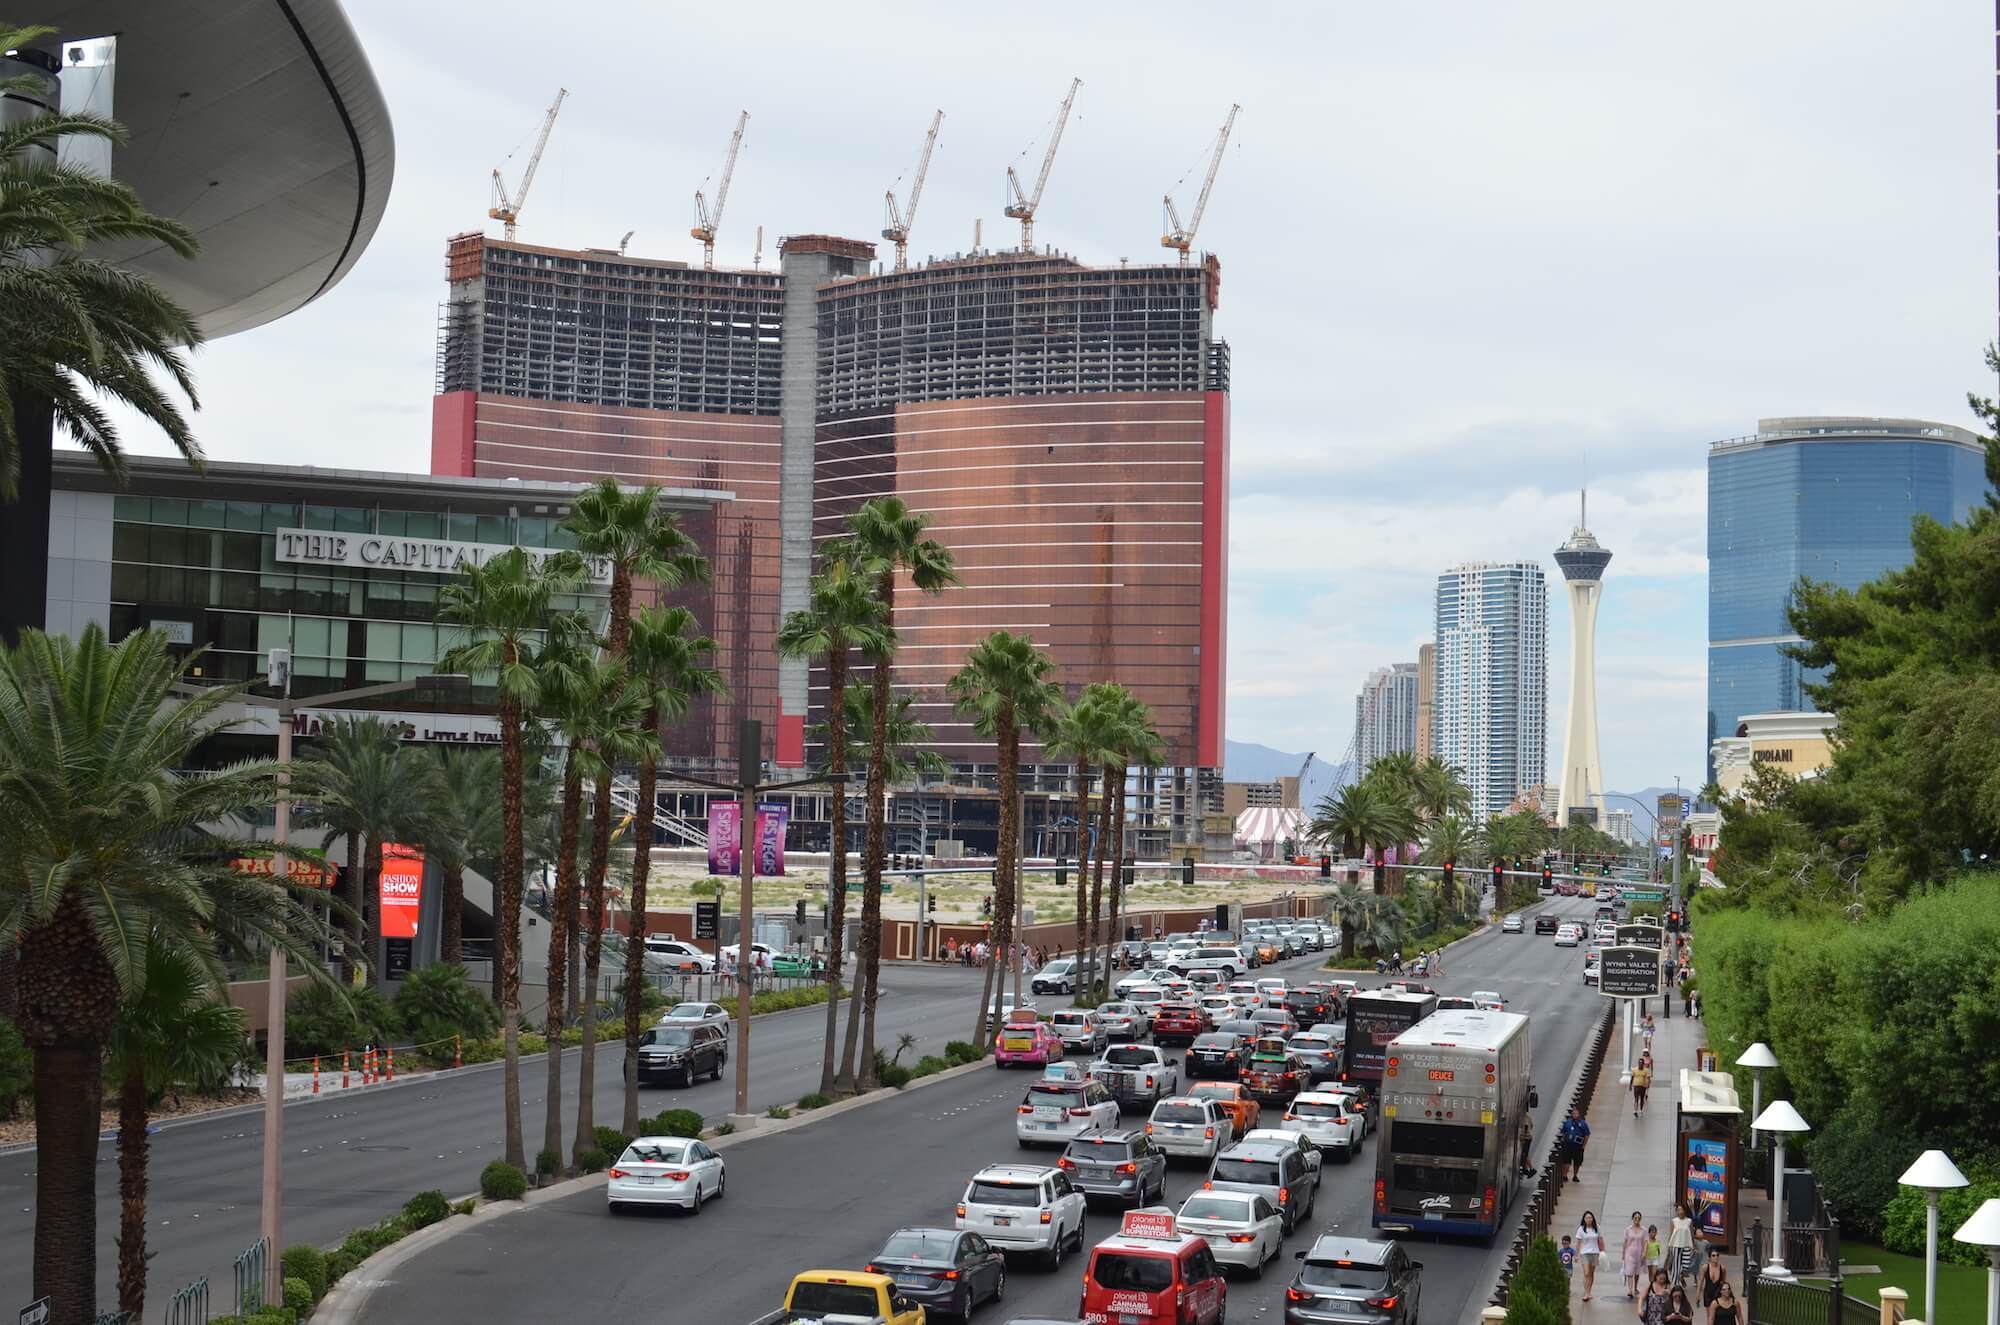 resorts world las vegas under construction, where nooses were found